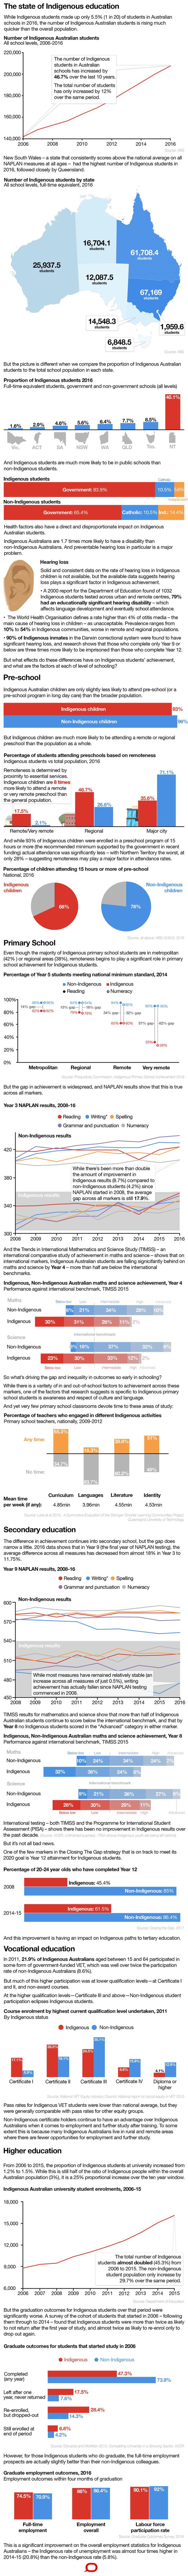 Indigenous students who graduate from university have slightly higher full-time employment prospects than their non-Indigenous peers.